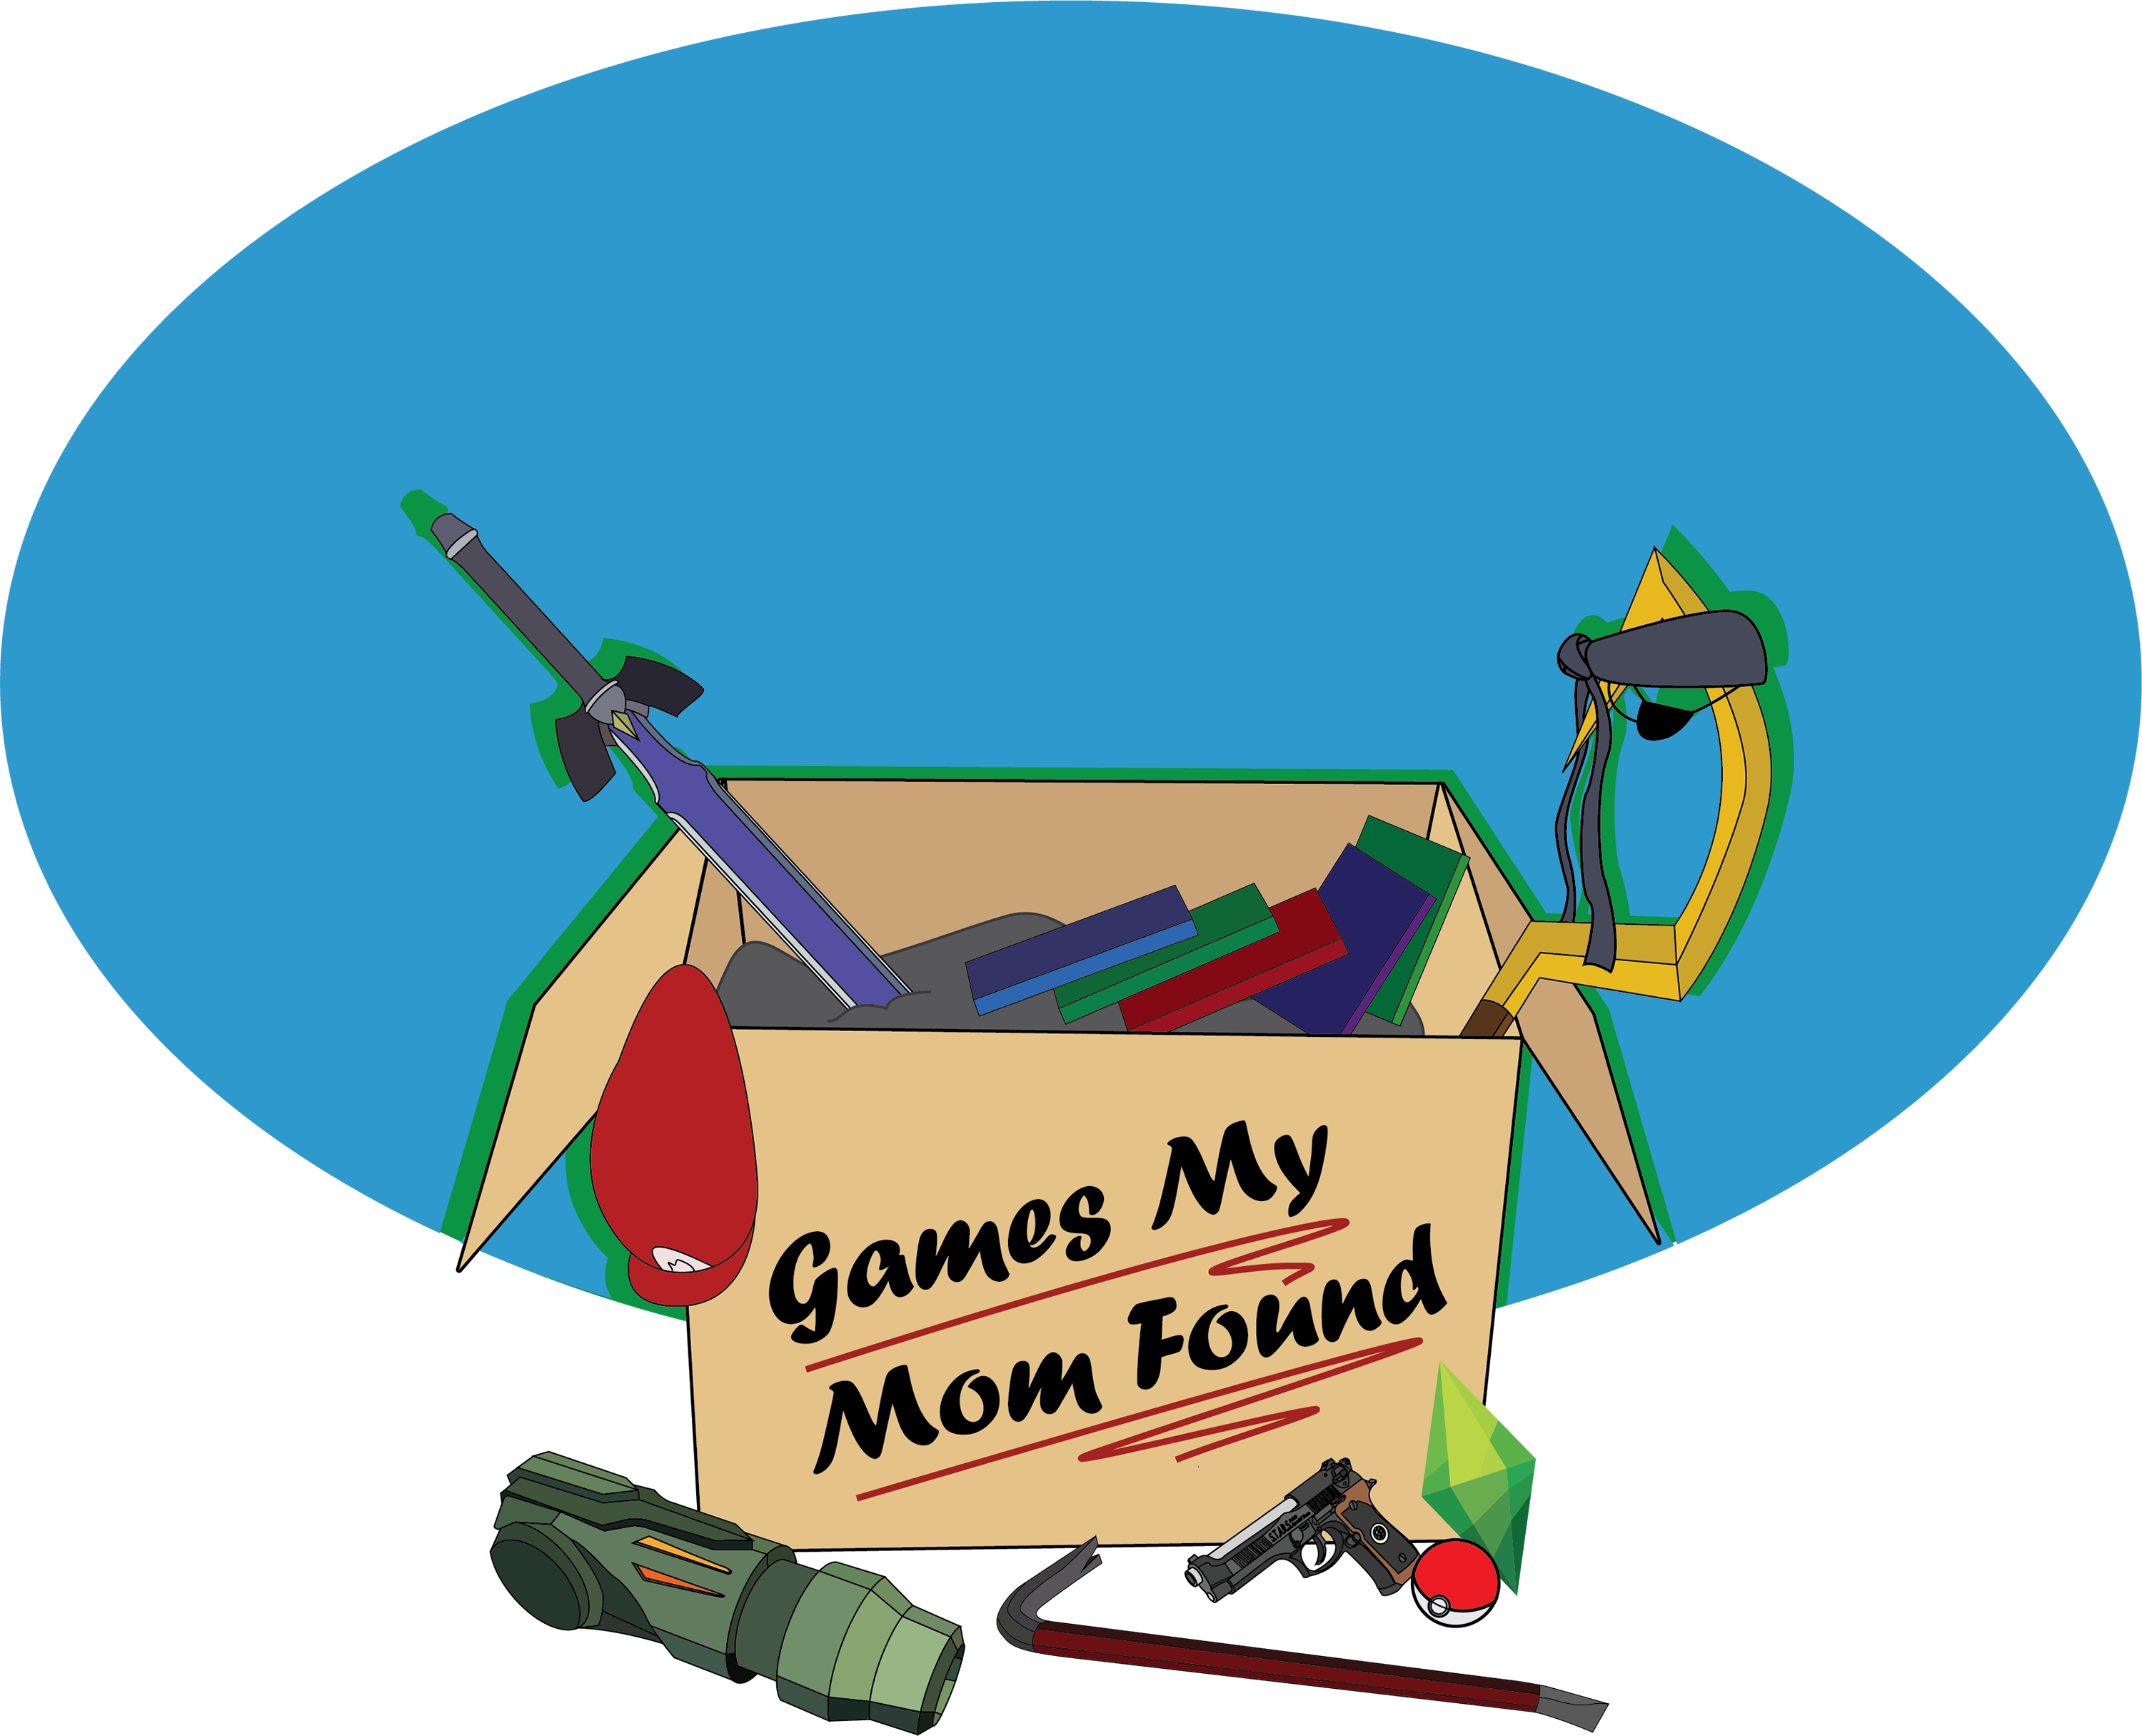 GamesMyMomFound